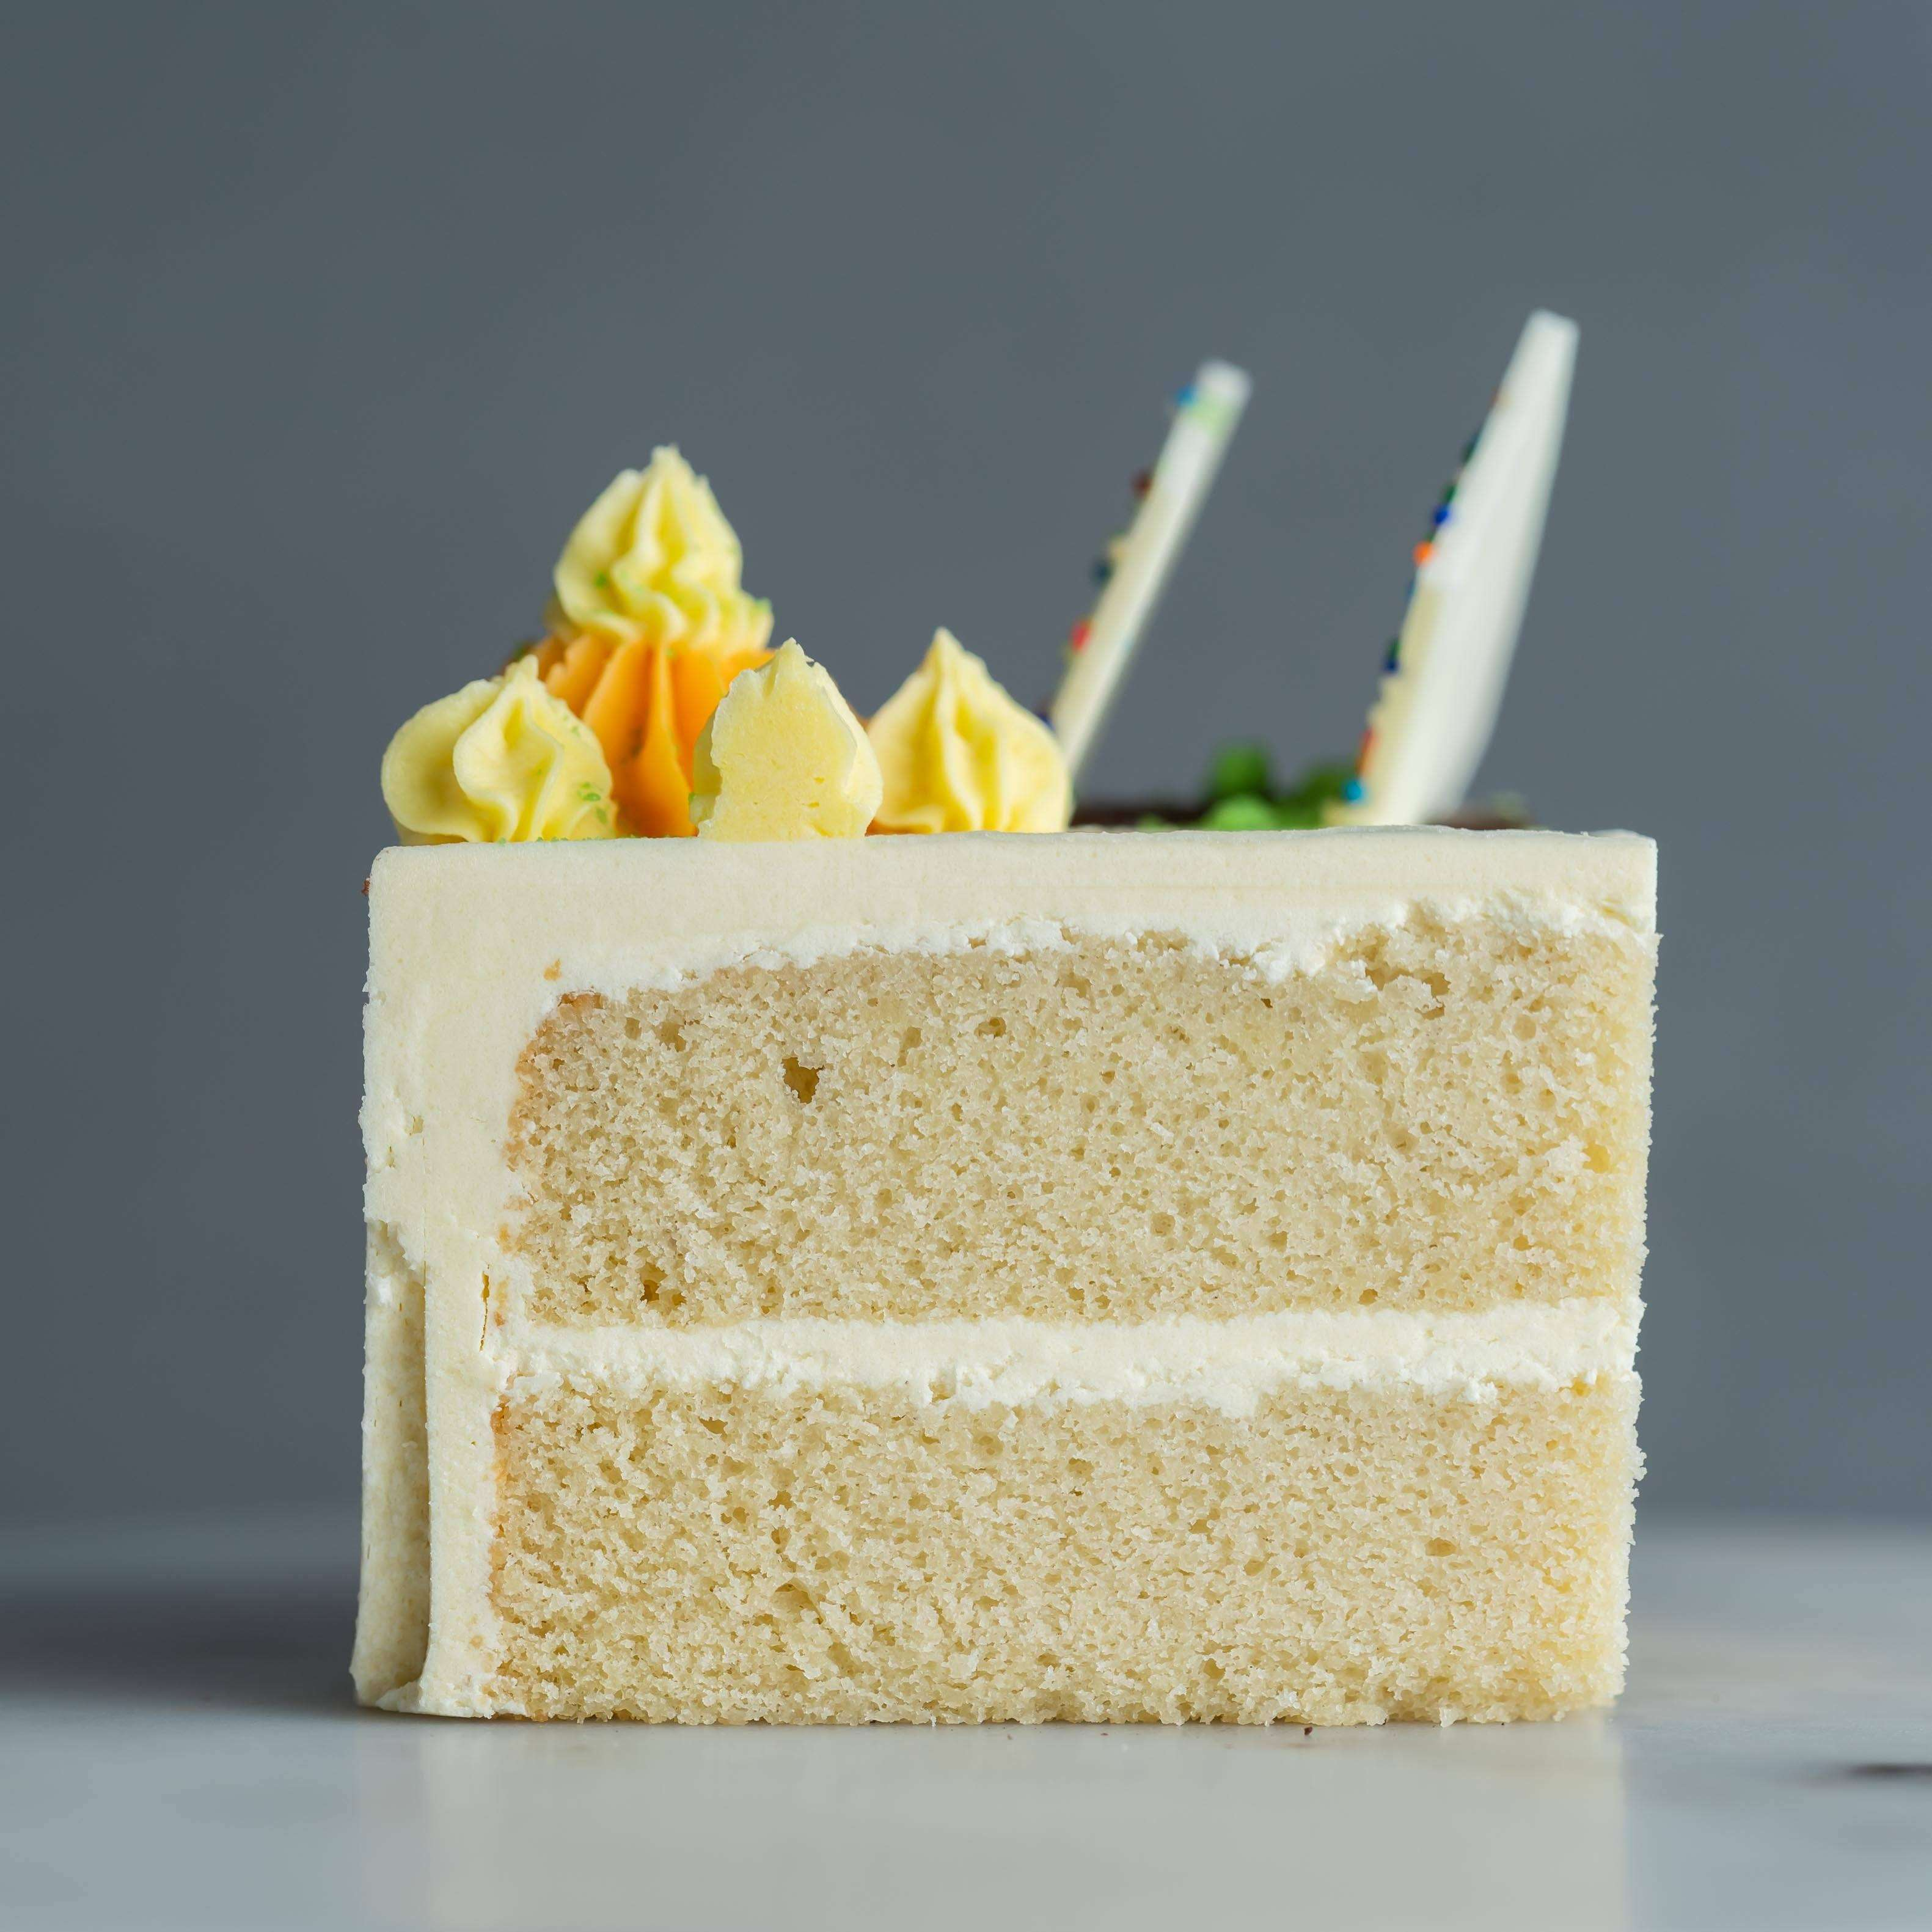 Halal Cakes | Eat Cake Today | Delivery KL/PJ